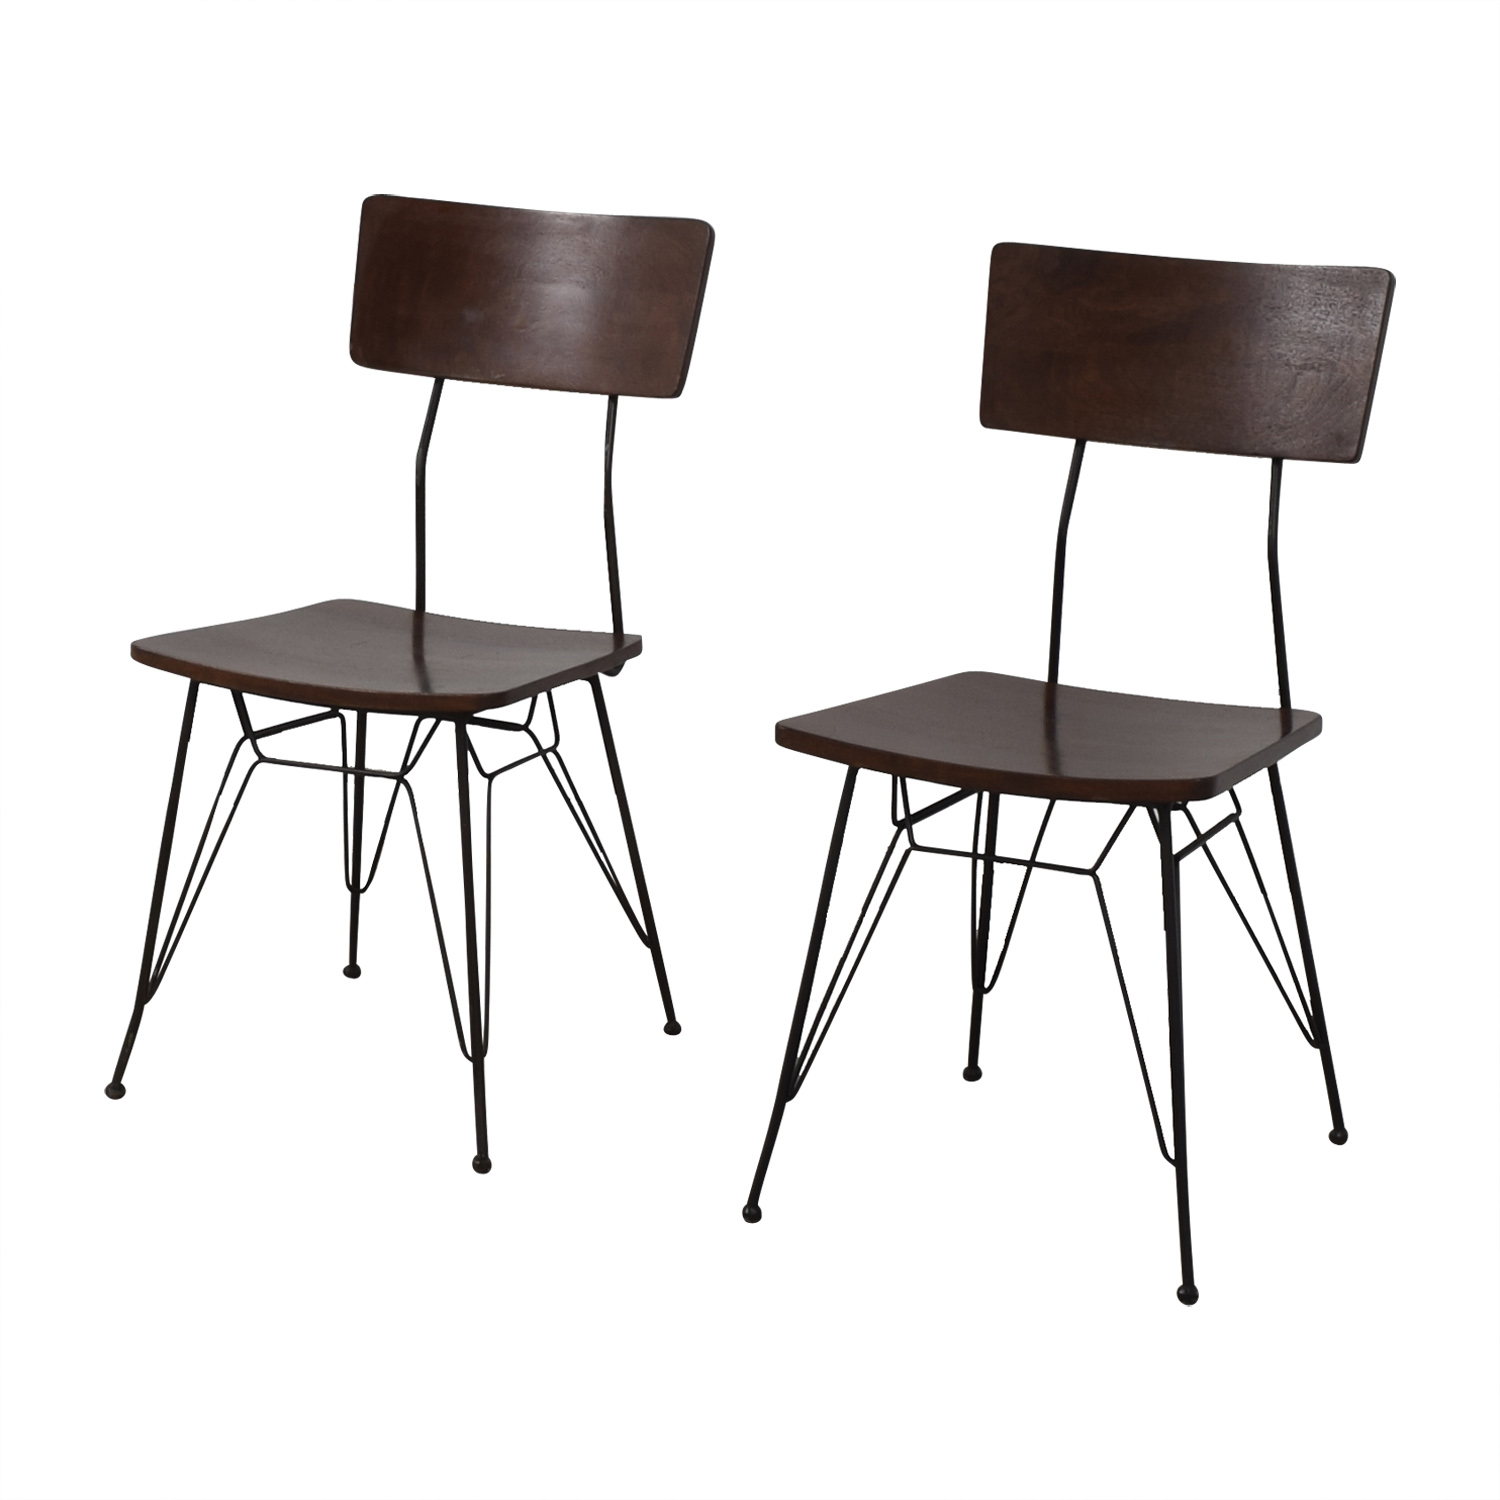 buy Crate & Barrel Elston Dining Chairs Crate & Barrel Chairs